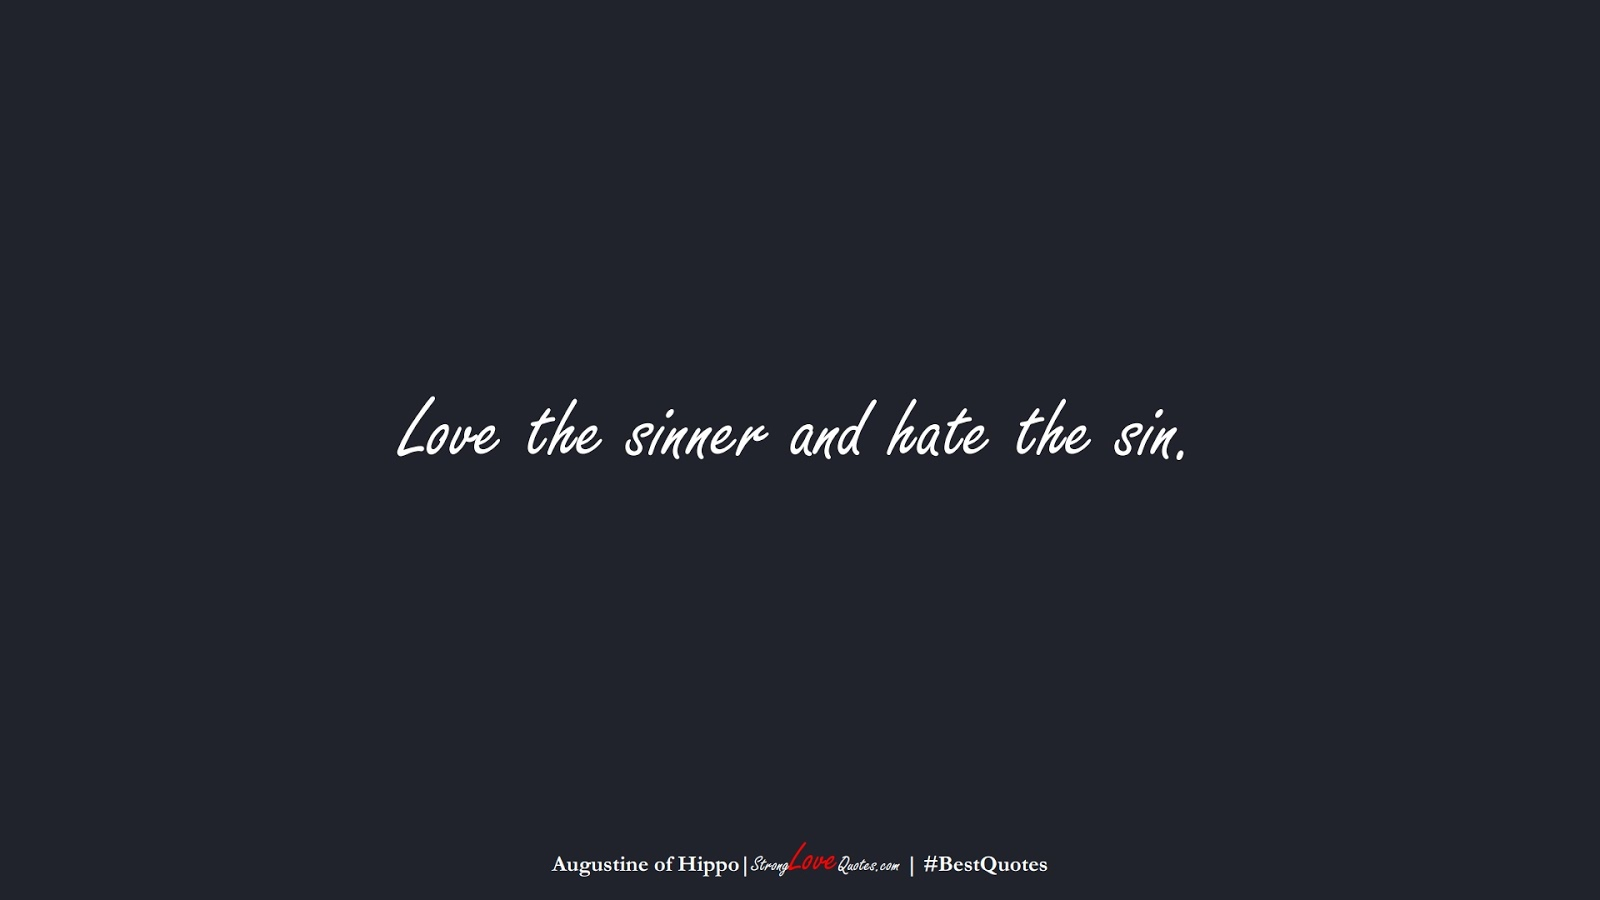 Love the sinner and hate the sin. (Augustine of Hippo);  #BestQuotes